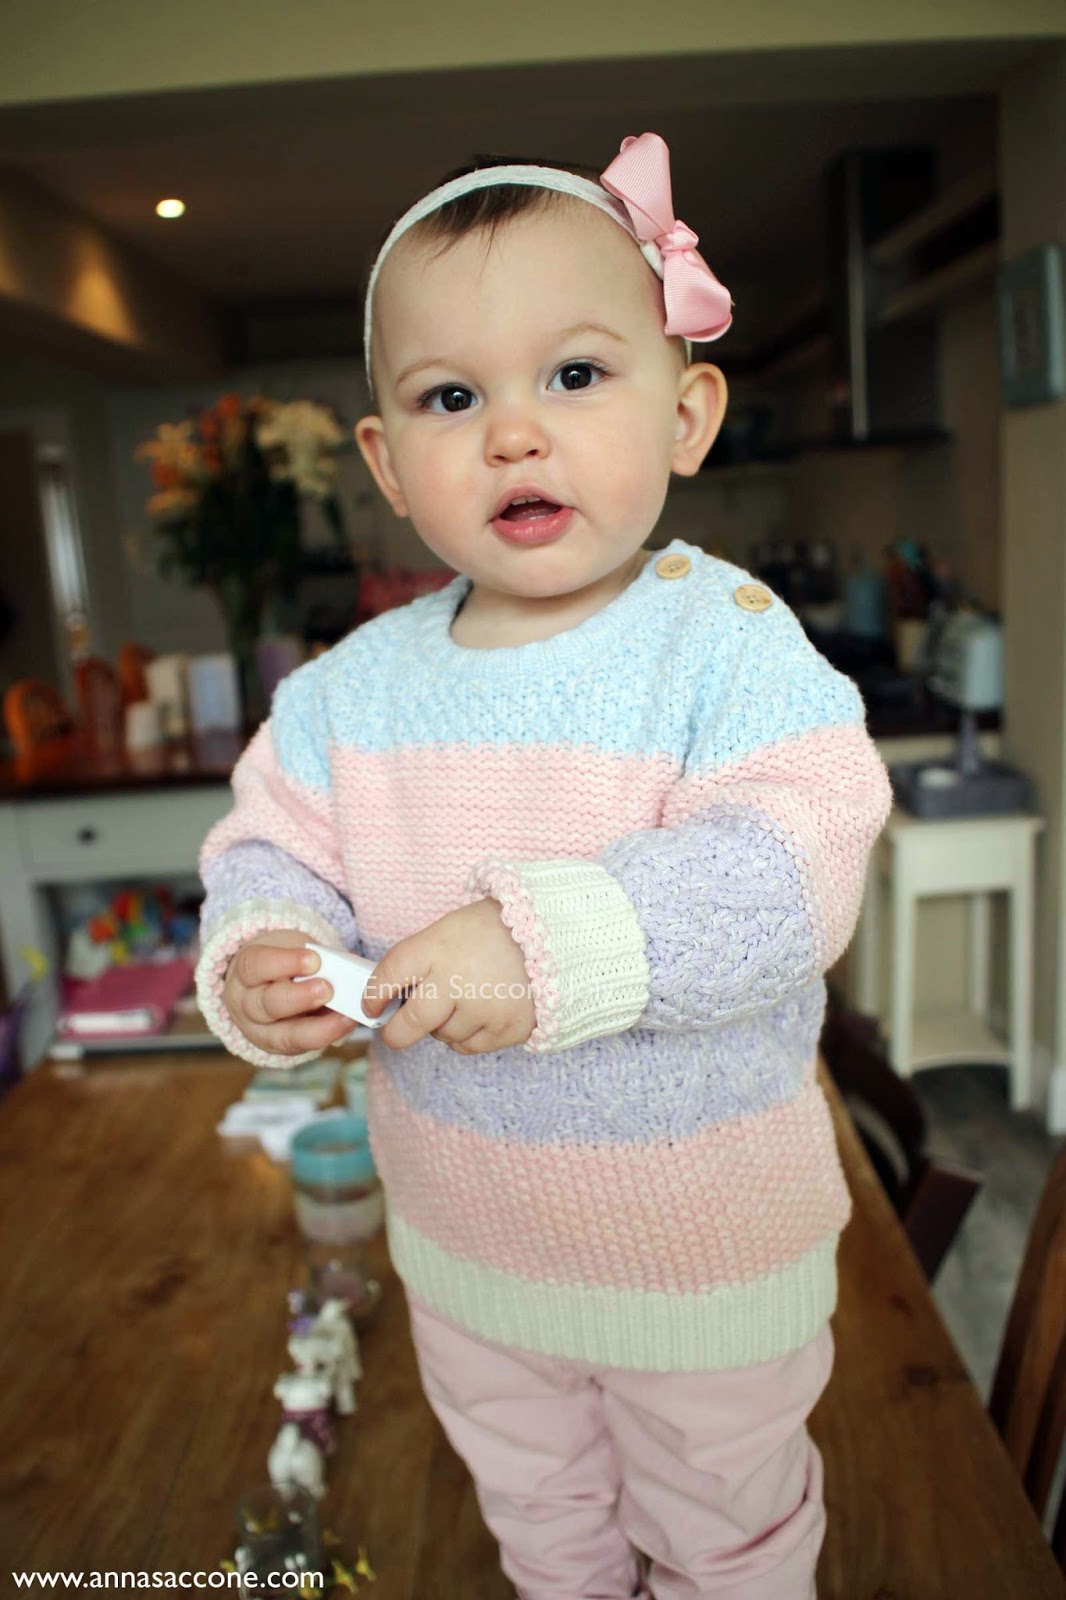 e992735fae0 Emilia is all in pastels today! She is wearing her new jumper & jeans from  Next, a pink bow from Layniebug Designs & lace headband from Heather's  Bonny Bows ...